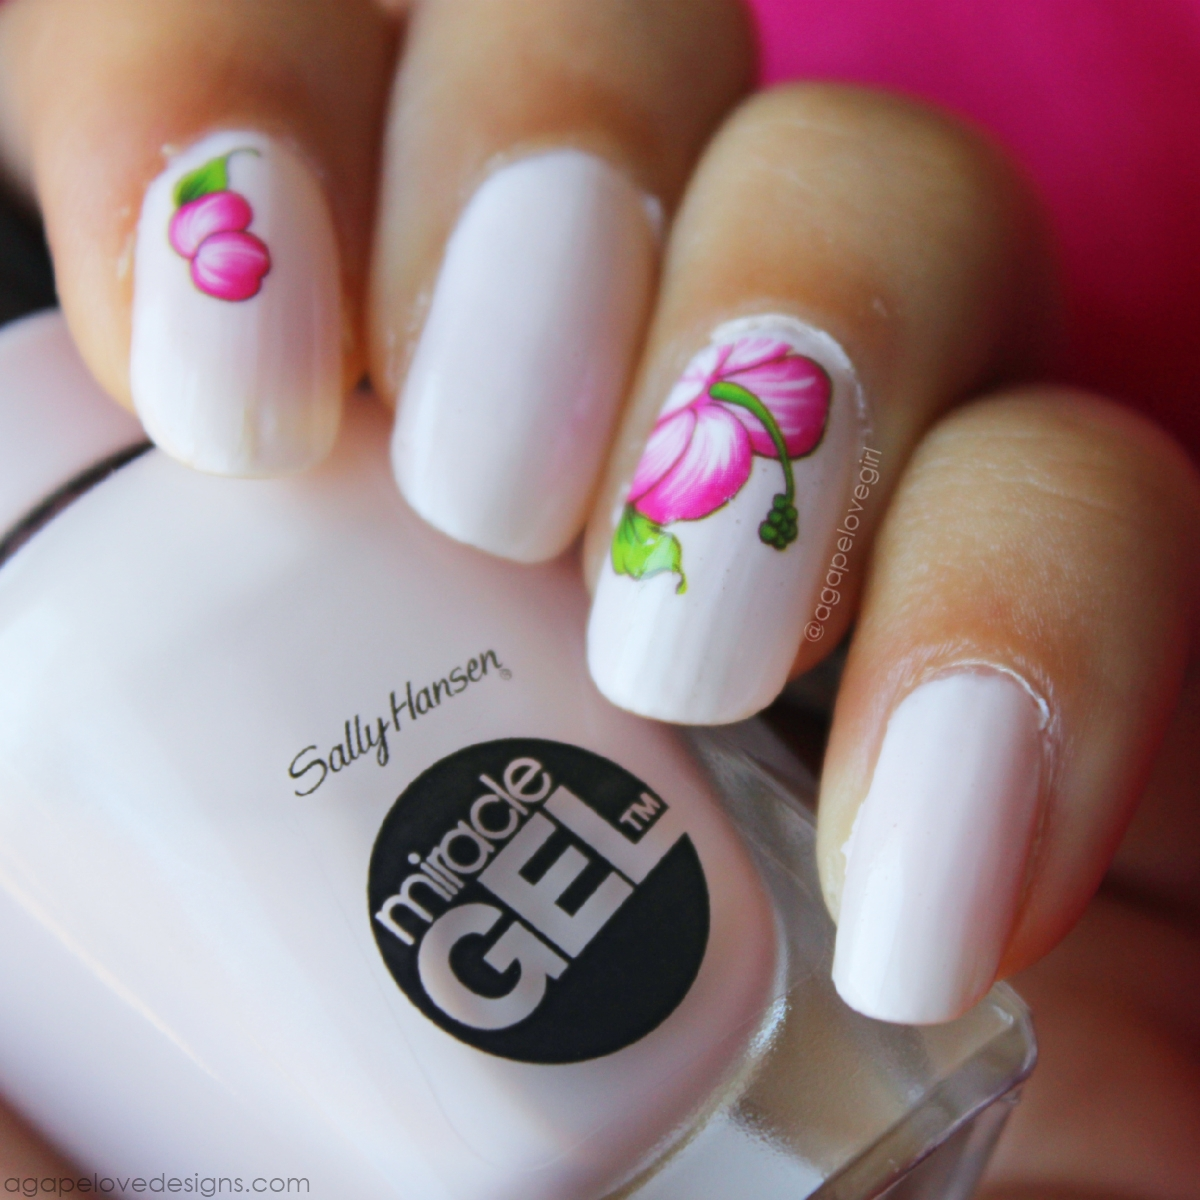 Agape Love Designs: Floral Mani | Sally Hansen Miracle Gel Polish Review